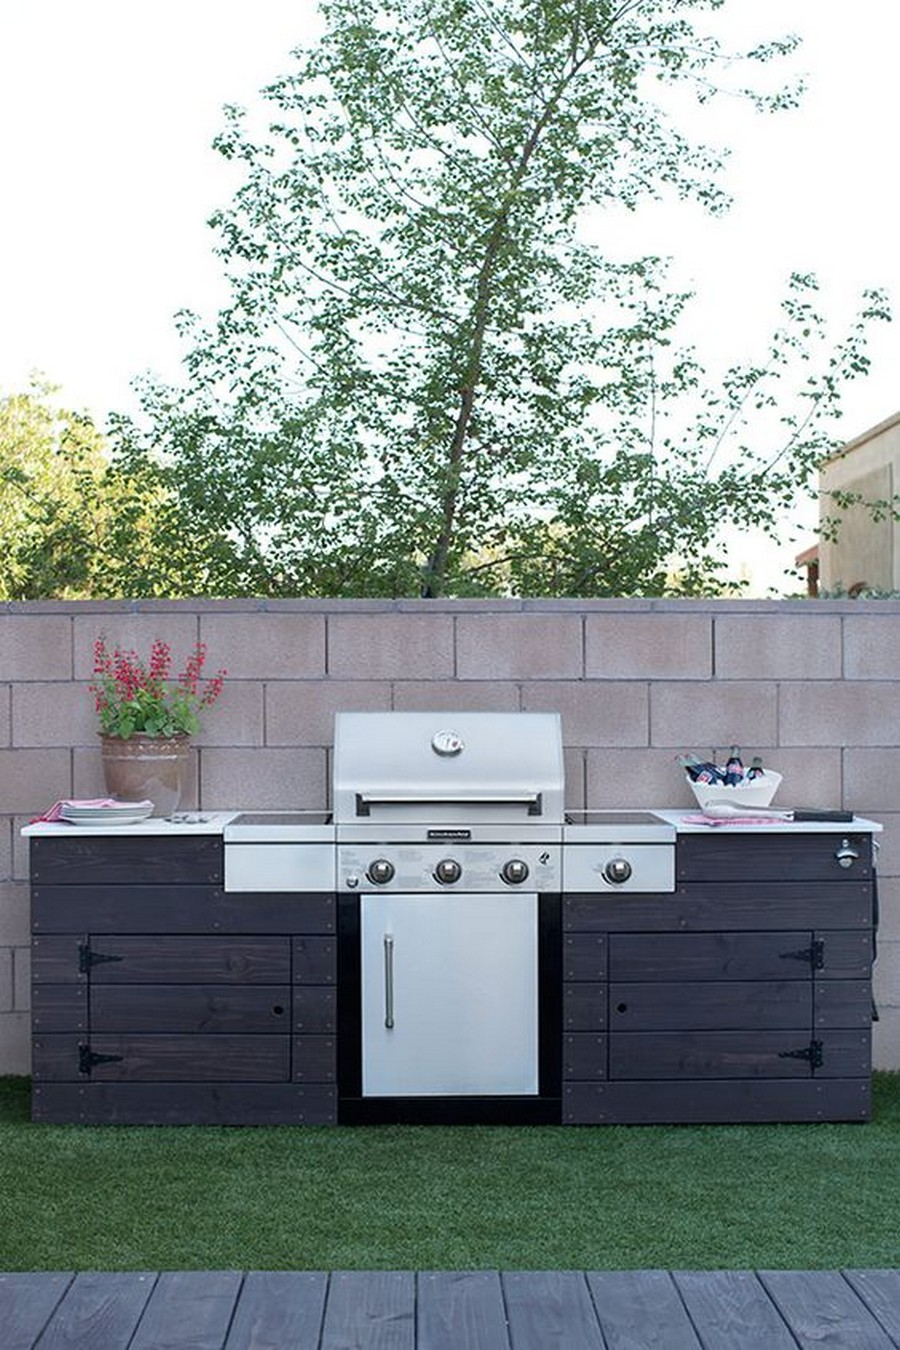 Outdoor Kitchen Design Ideas 10 Outdoor Kitchen Design Ideas Perfect For Your Backyard 10 Outdoor Kitchen Design Ideas Perfect For Your Backyard 4